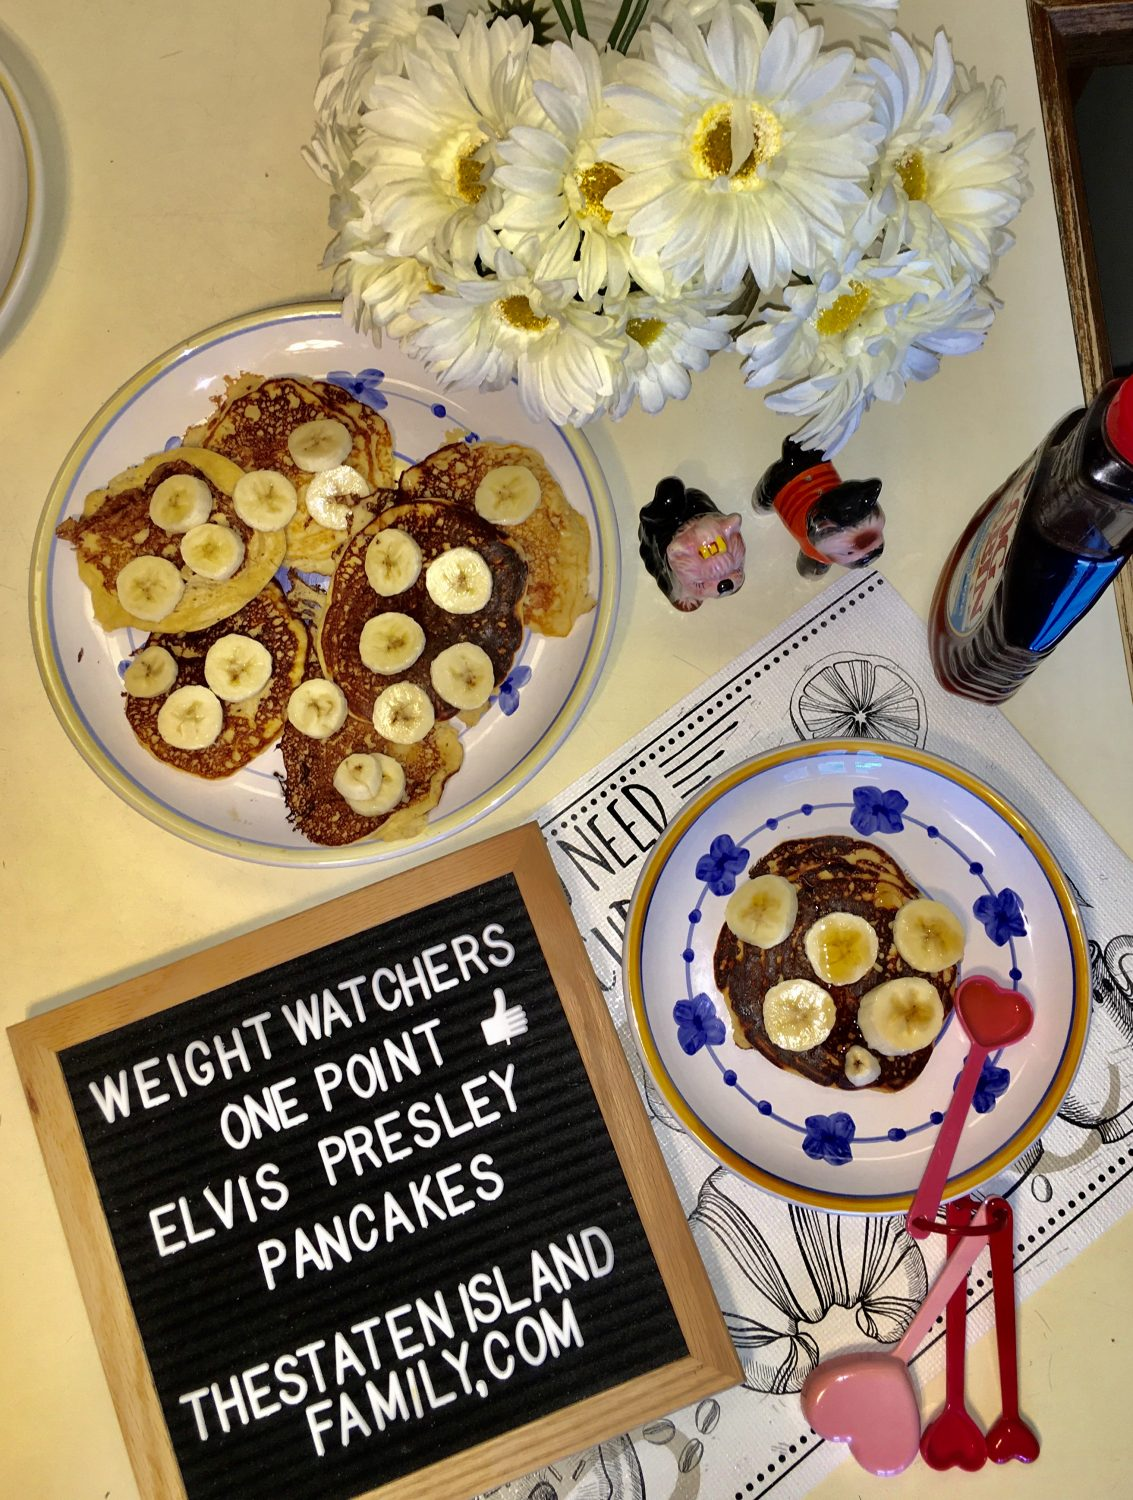 Weight Watcher One Point Elvis Presley Pancakes